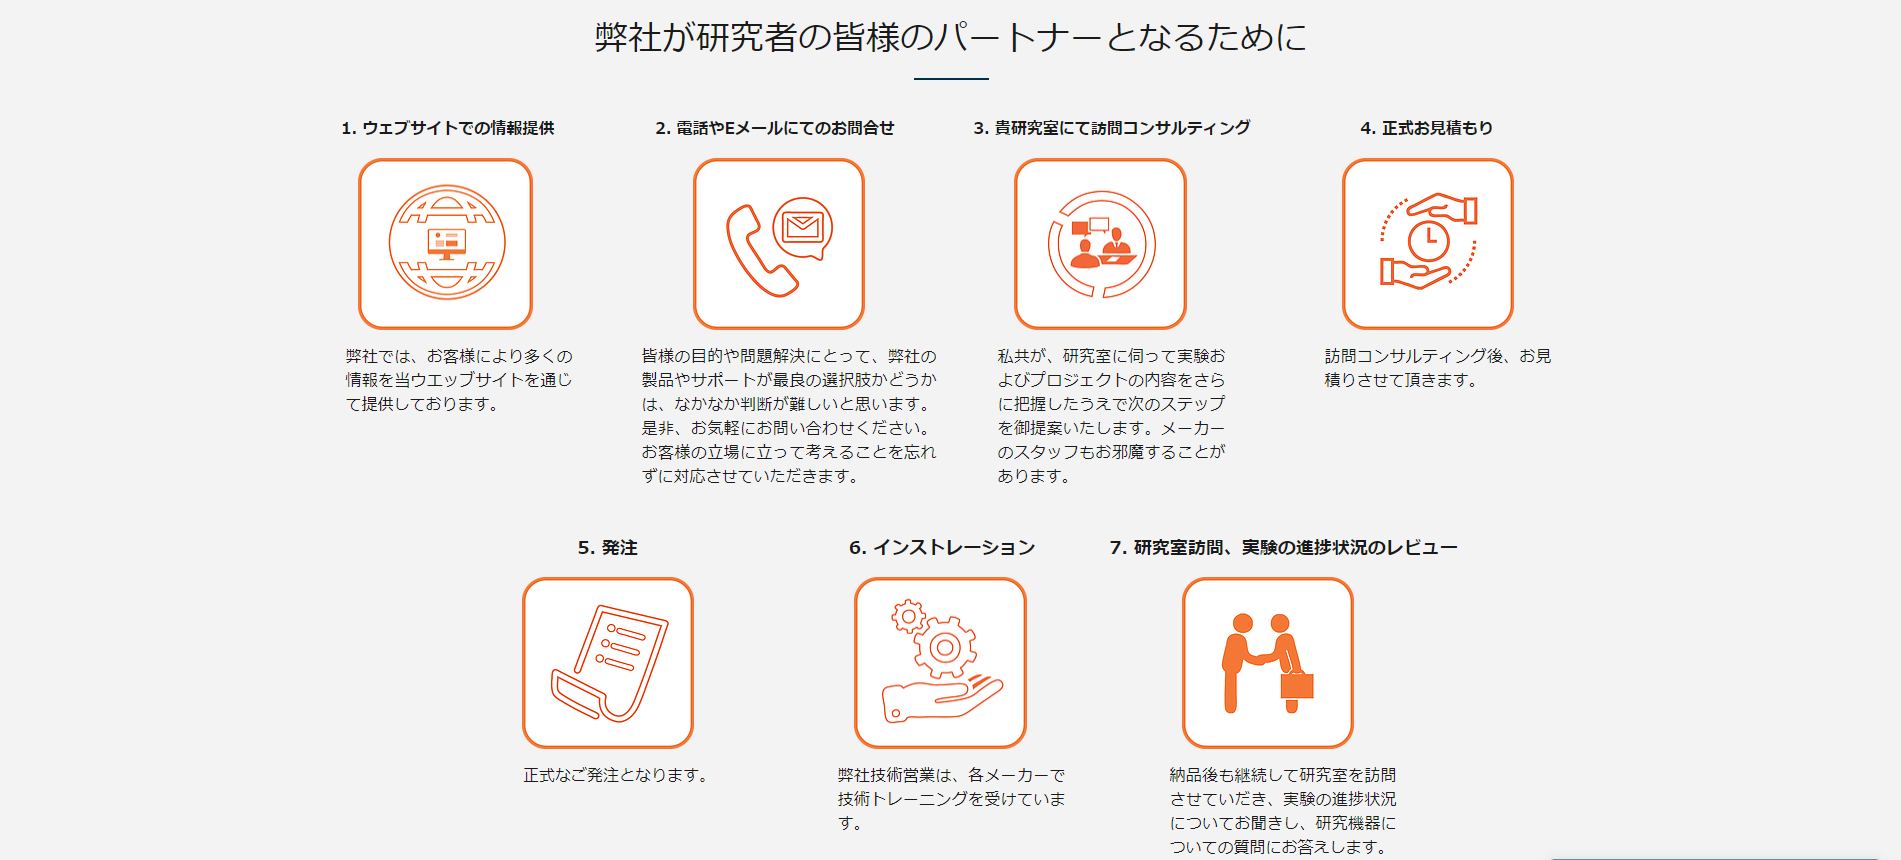 Japanese content marketing healthcare equipment company